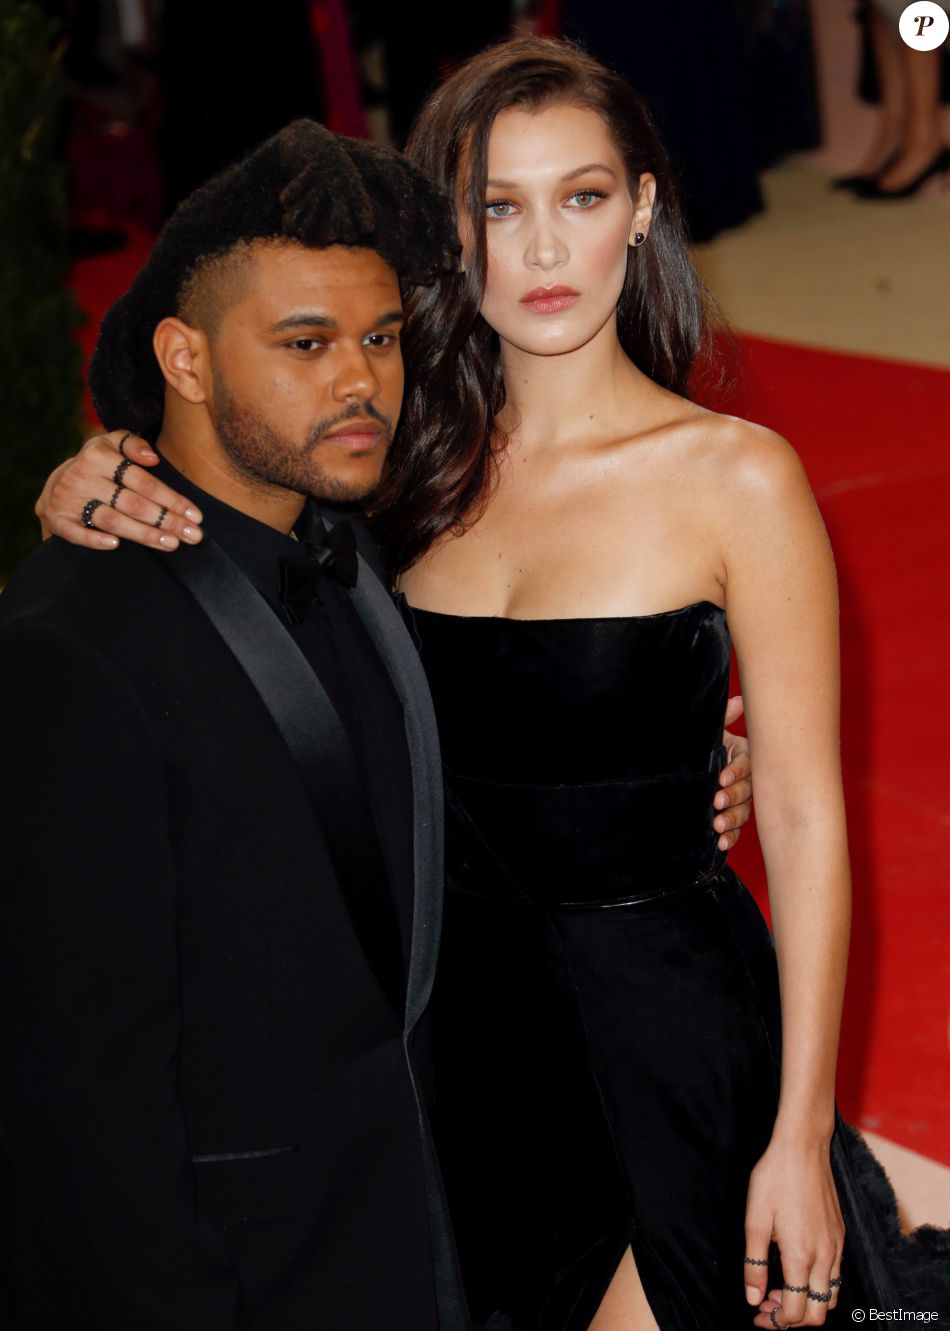 "Bella Hadid et son compagnon The Weeknd à la Soirée Costume Institute Benefit Gala 2016 (Met Ball) sur le thème de ""Manus x Machina"" au Metropolitan Museum of Art à New York, le 2 mai 2016. © Charles Guerin/Bestimage"